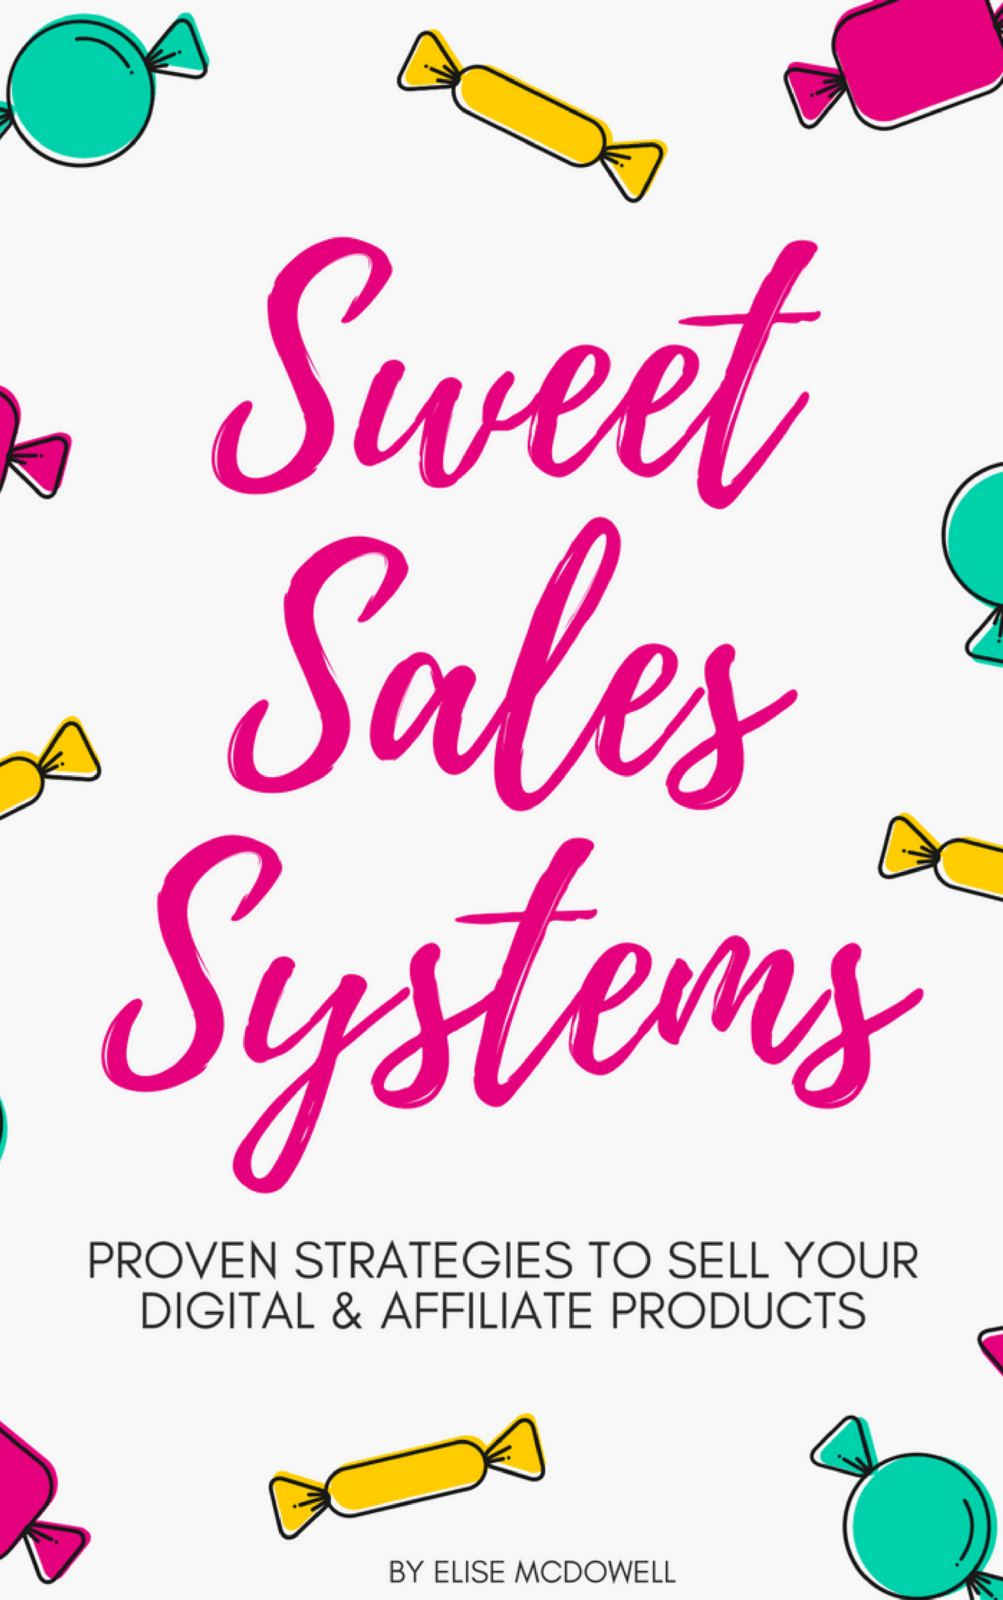 Learn how to create a profitable sales system to sell your digital and affiliate products.